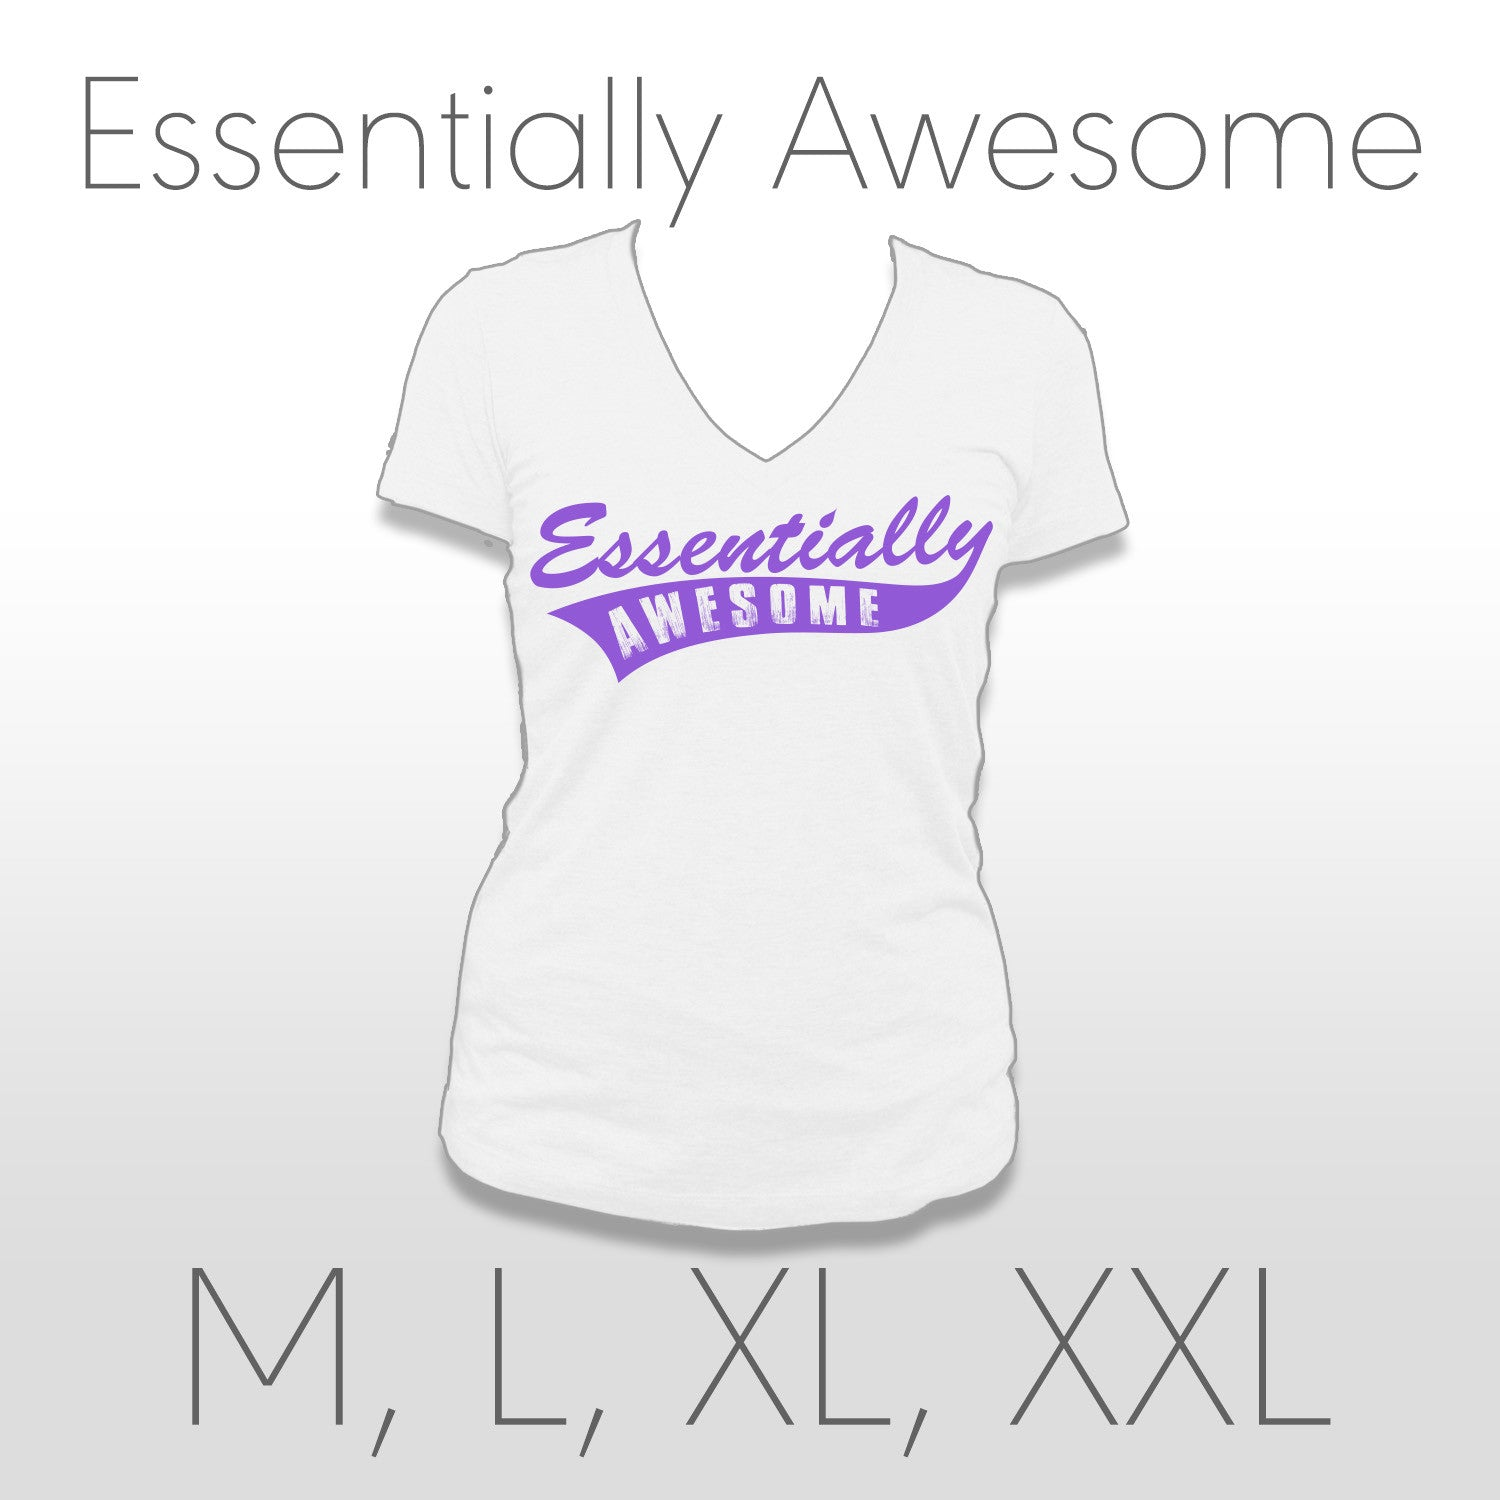 Essentially Awesome Ladies Tee